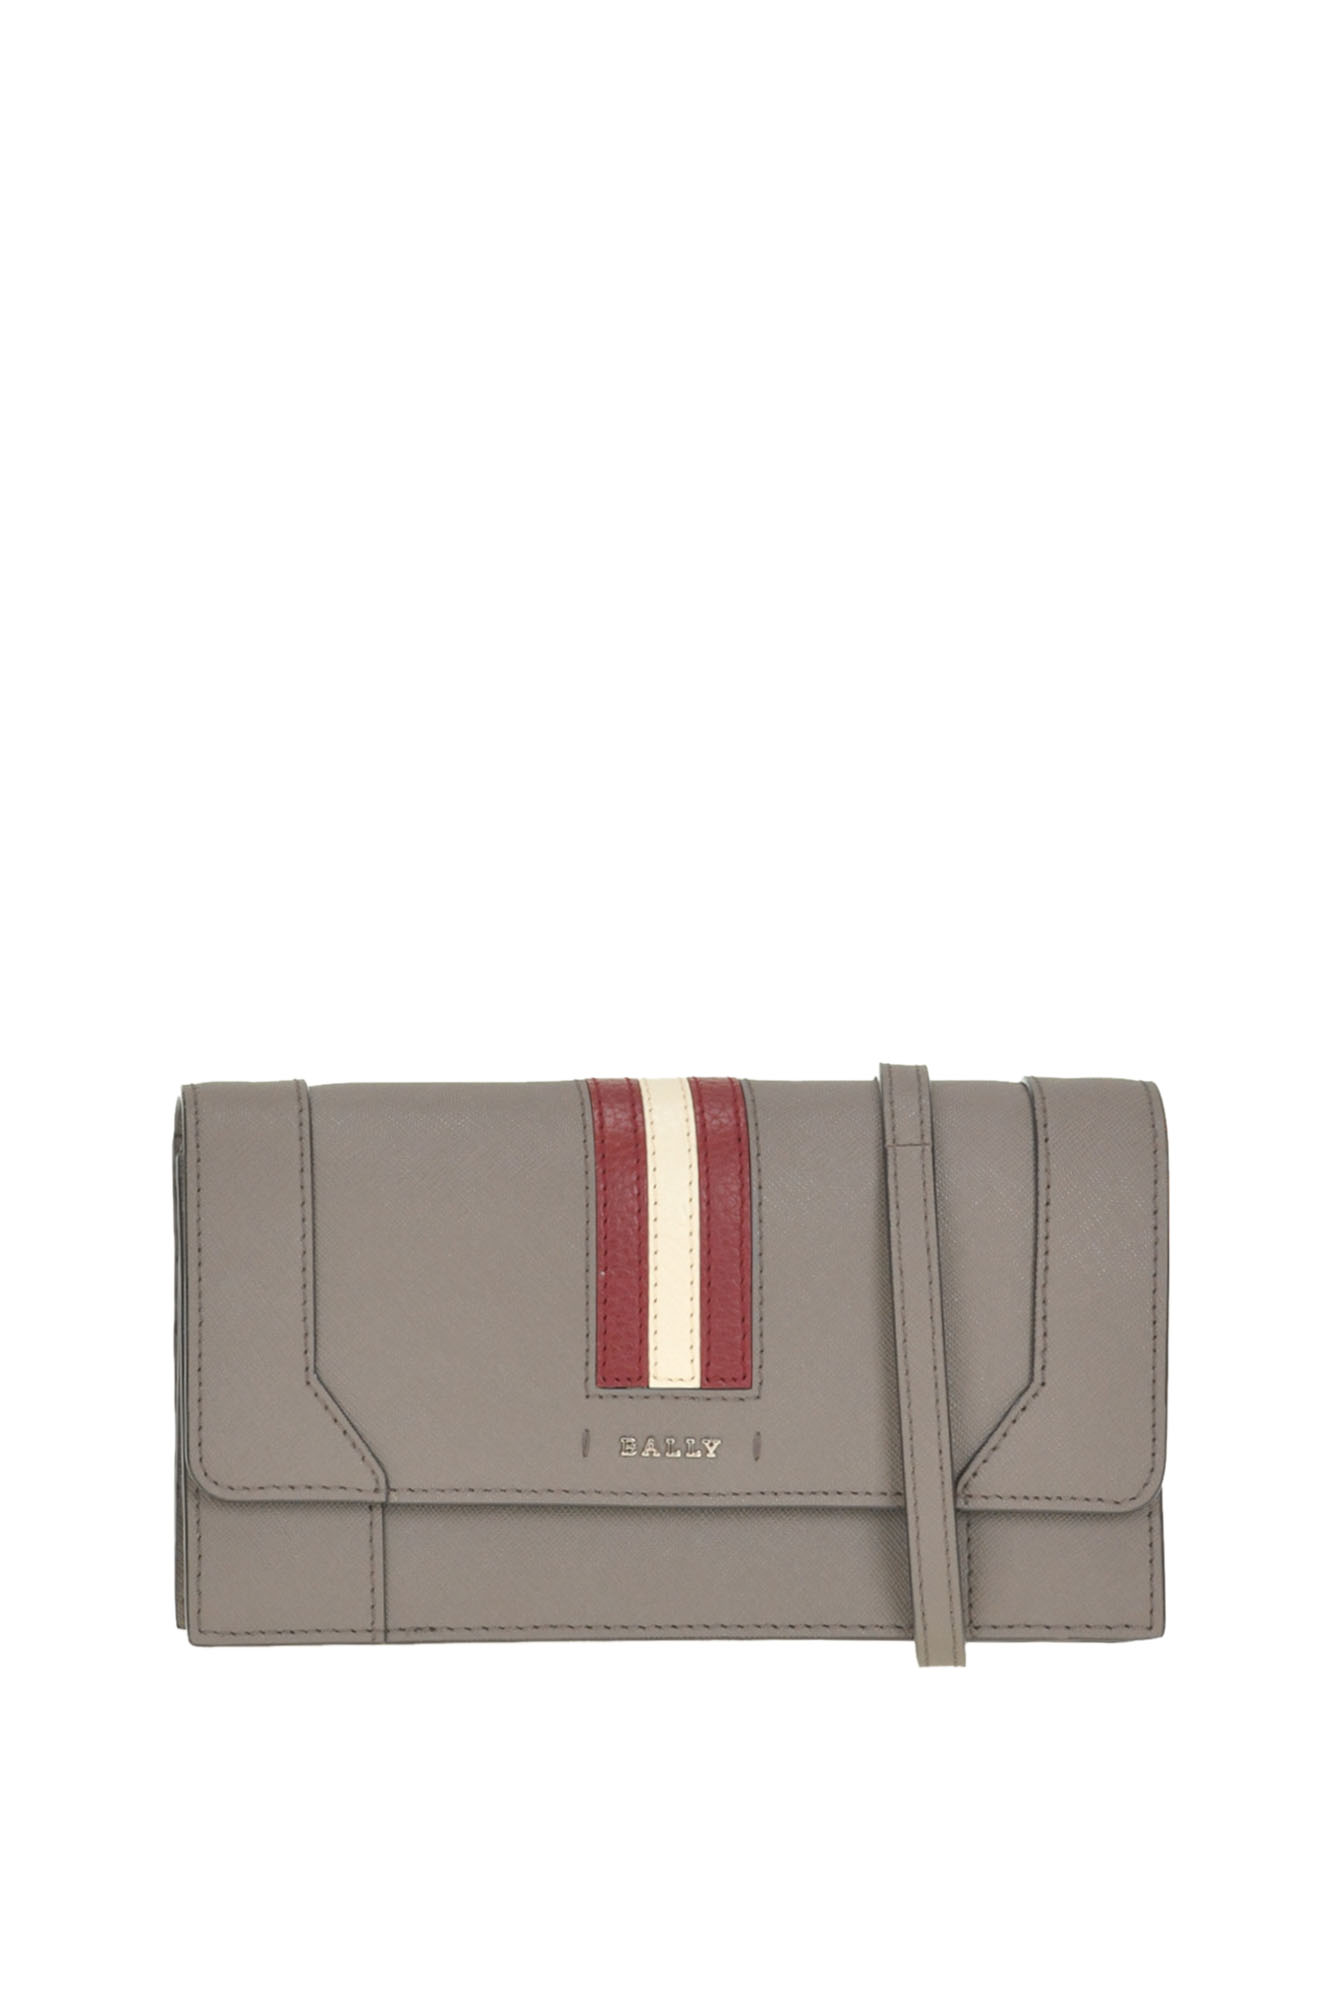 Stafford Leather Clutch in Dove-Grey